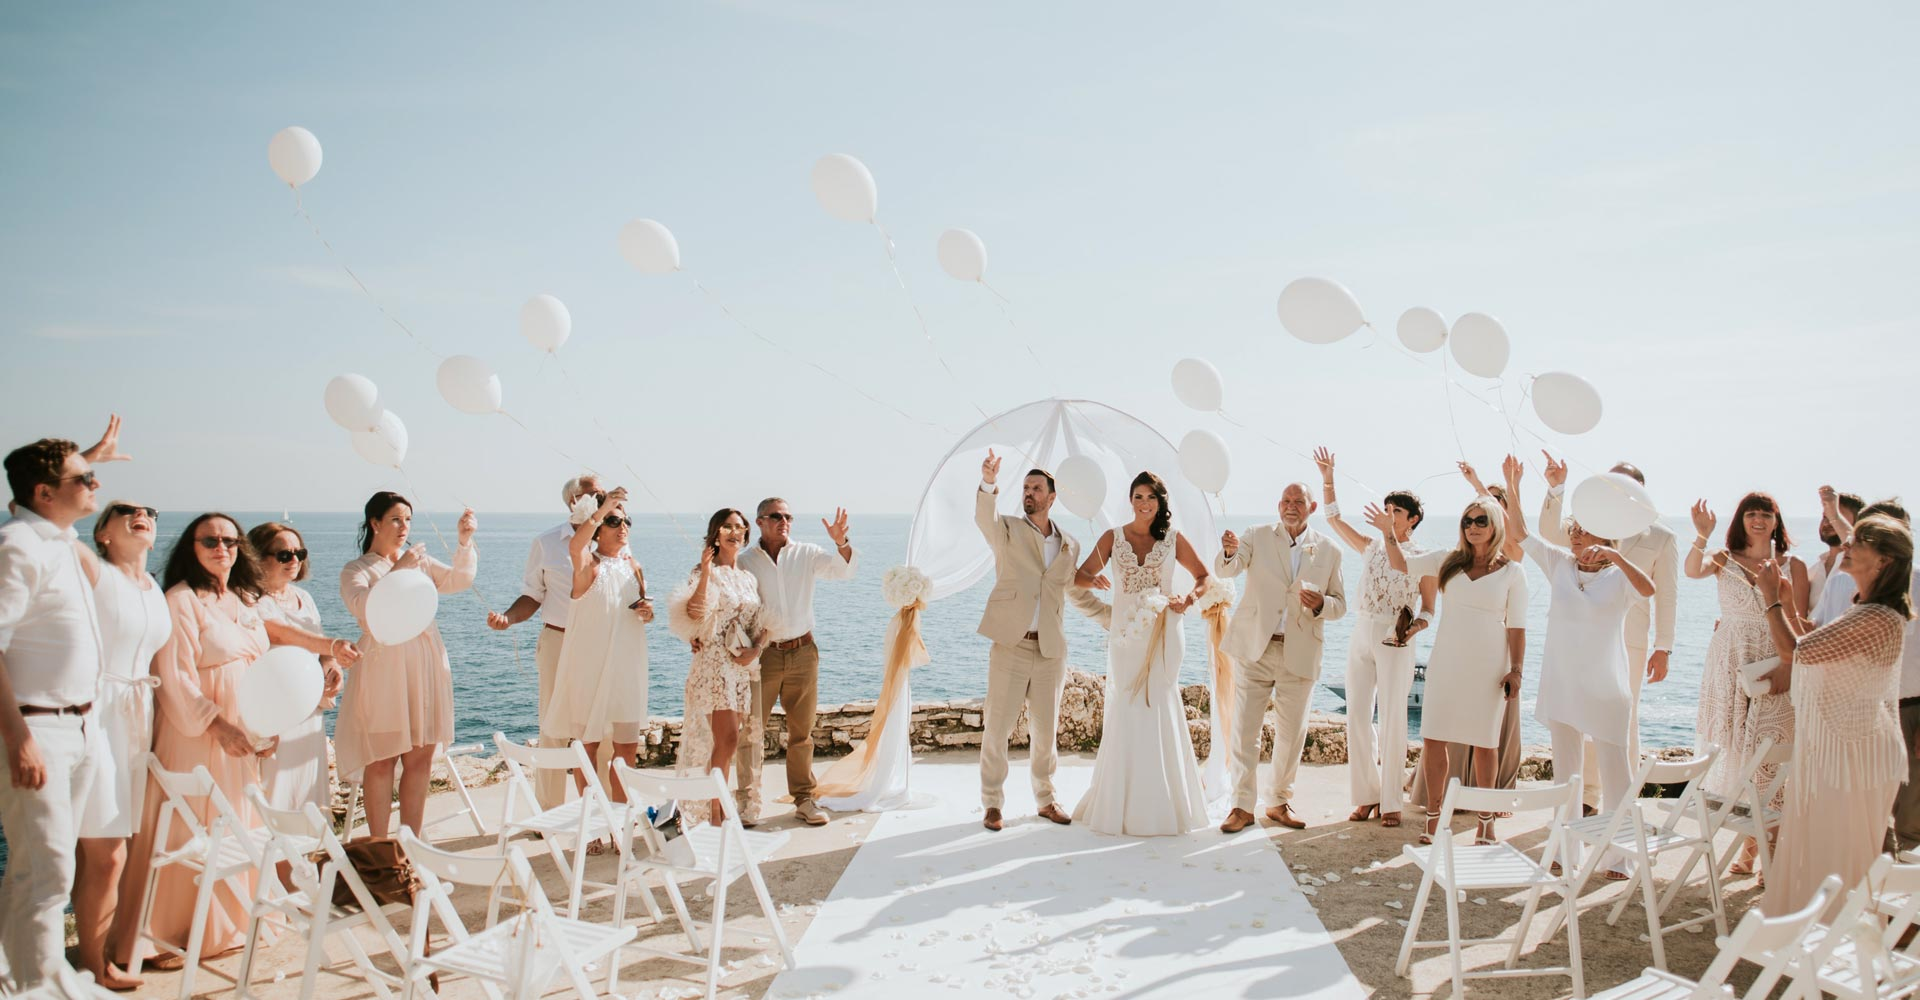 Newlyweds and their closest family and friends celebrate their wedding in                  Croatia, on top of the cliffs at the venue Gates of Paradise, near Adriatic sea.